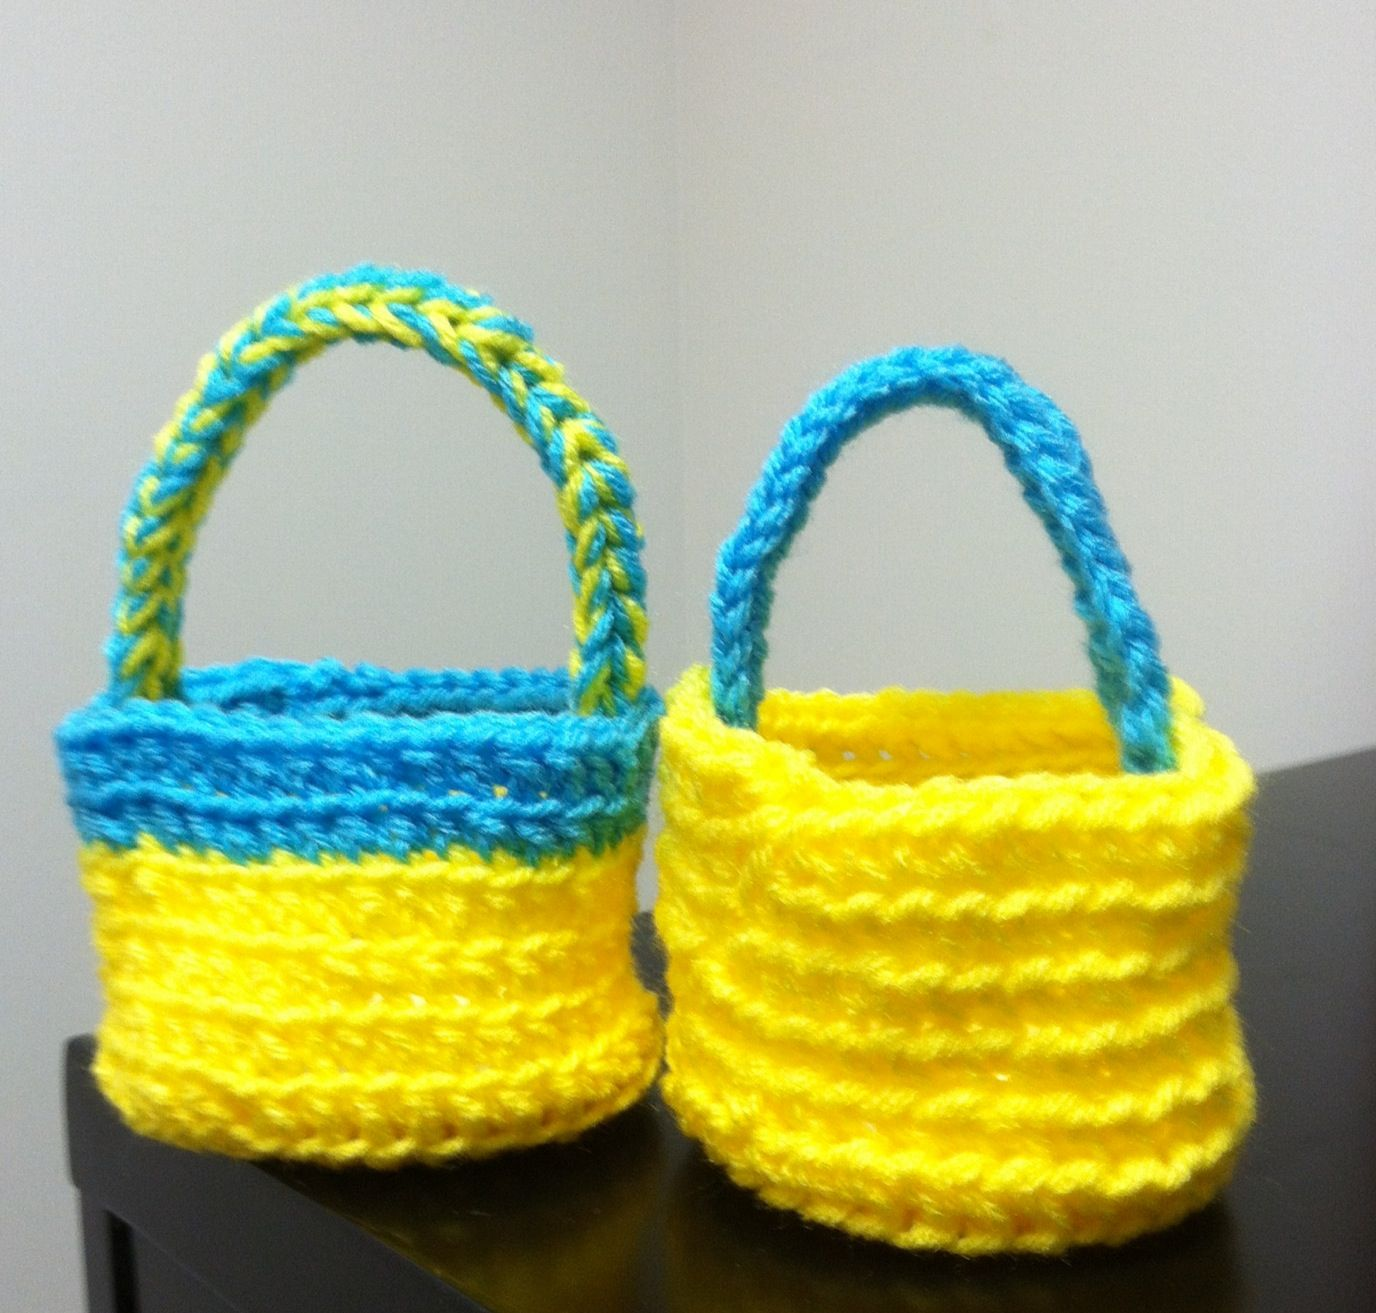 Crochet Easter Basket : Miniature Crochet Easter Baskets eggs and bunnies Pinterest